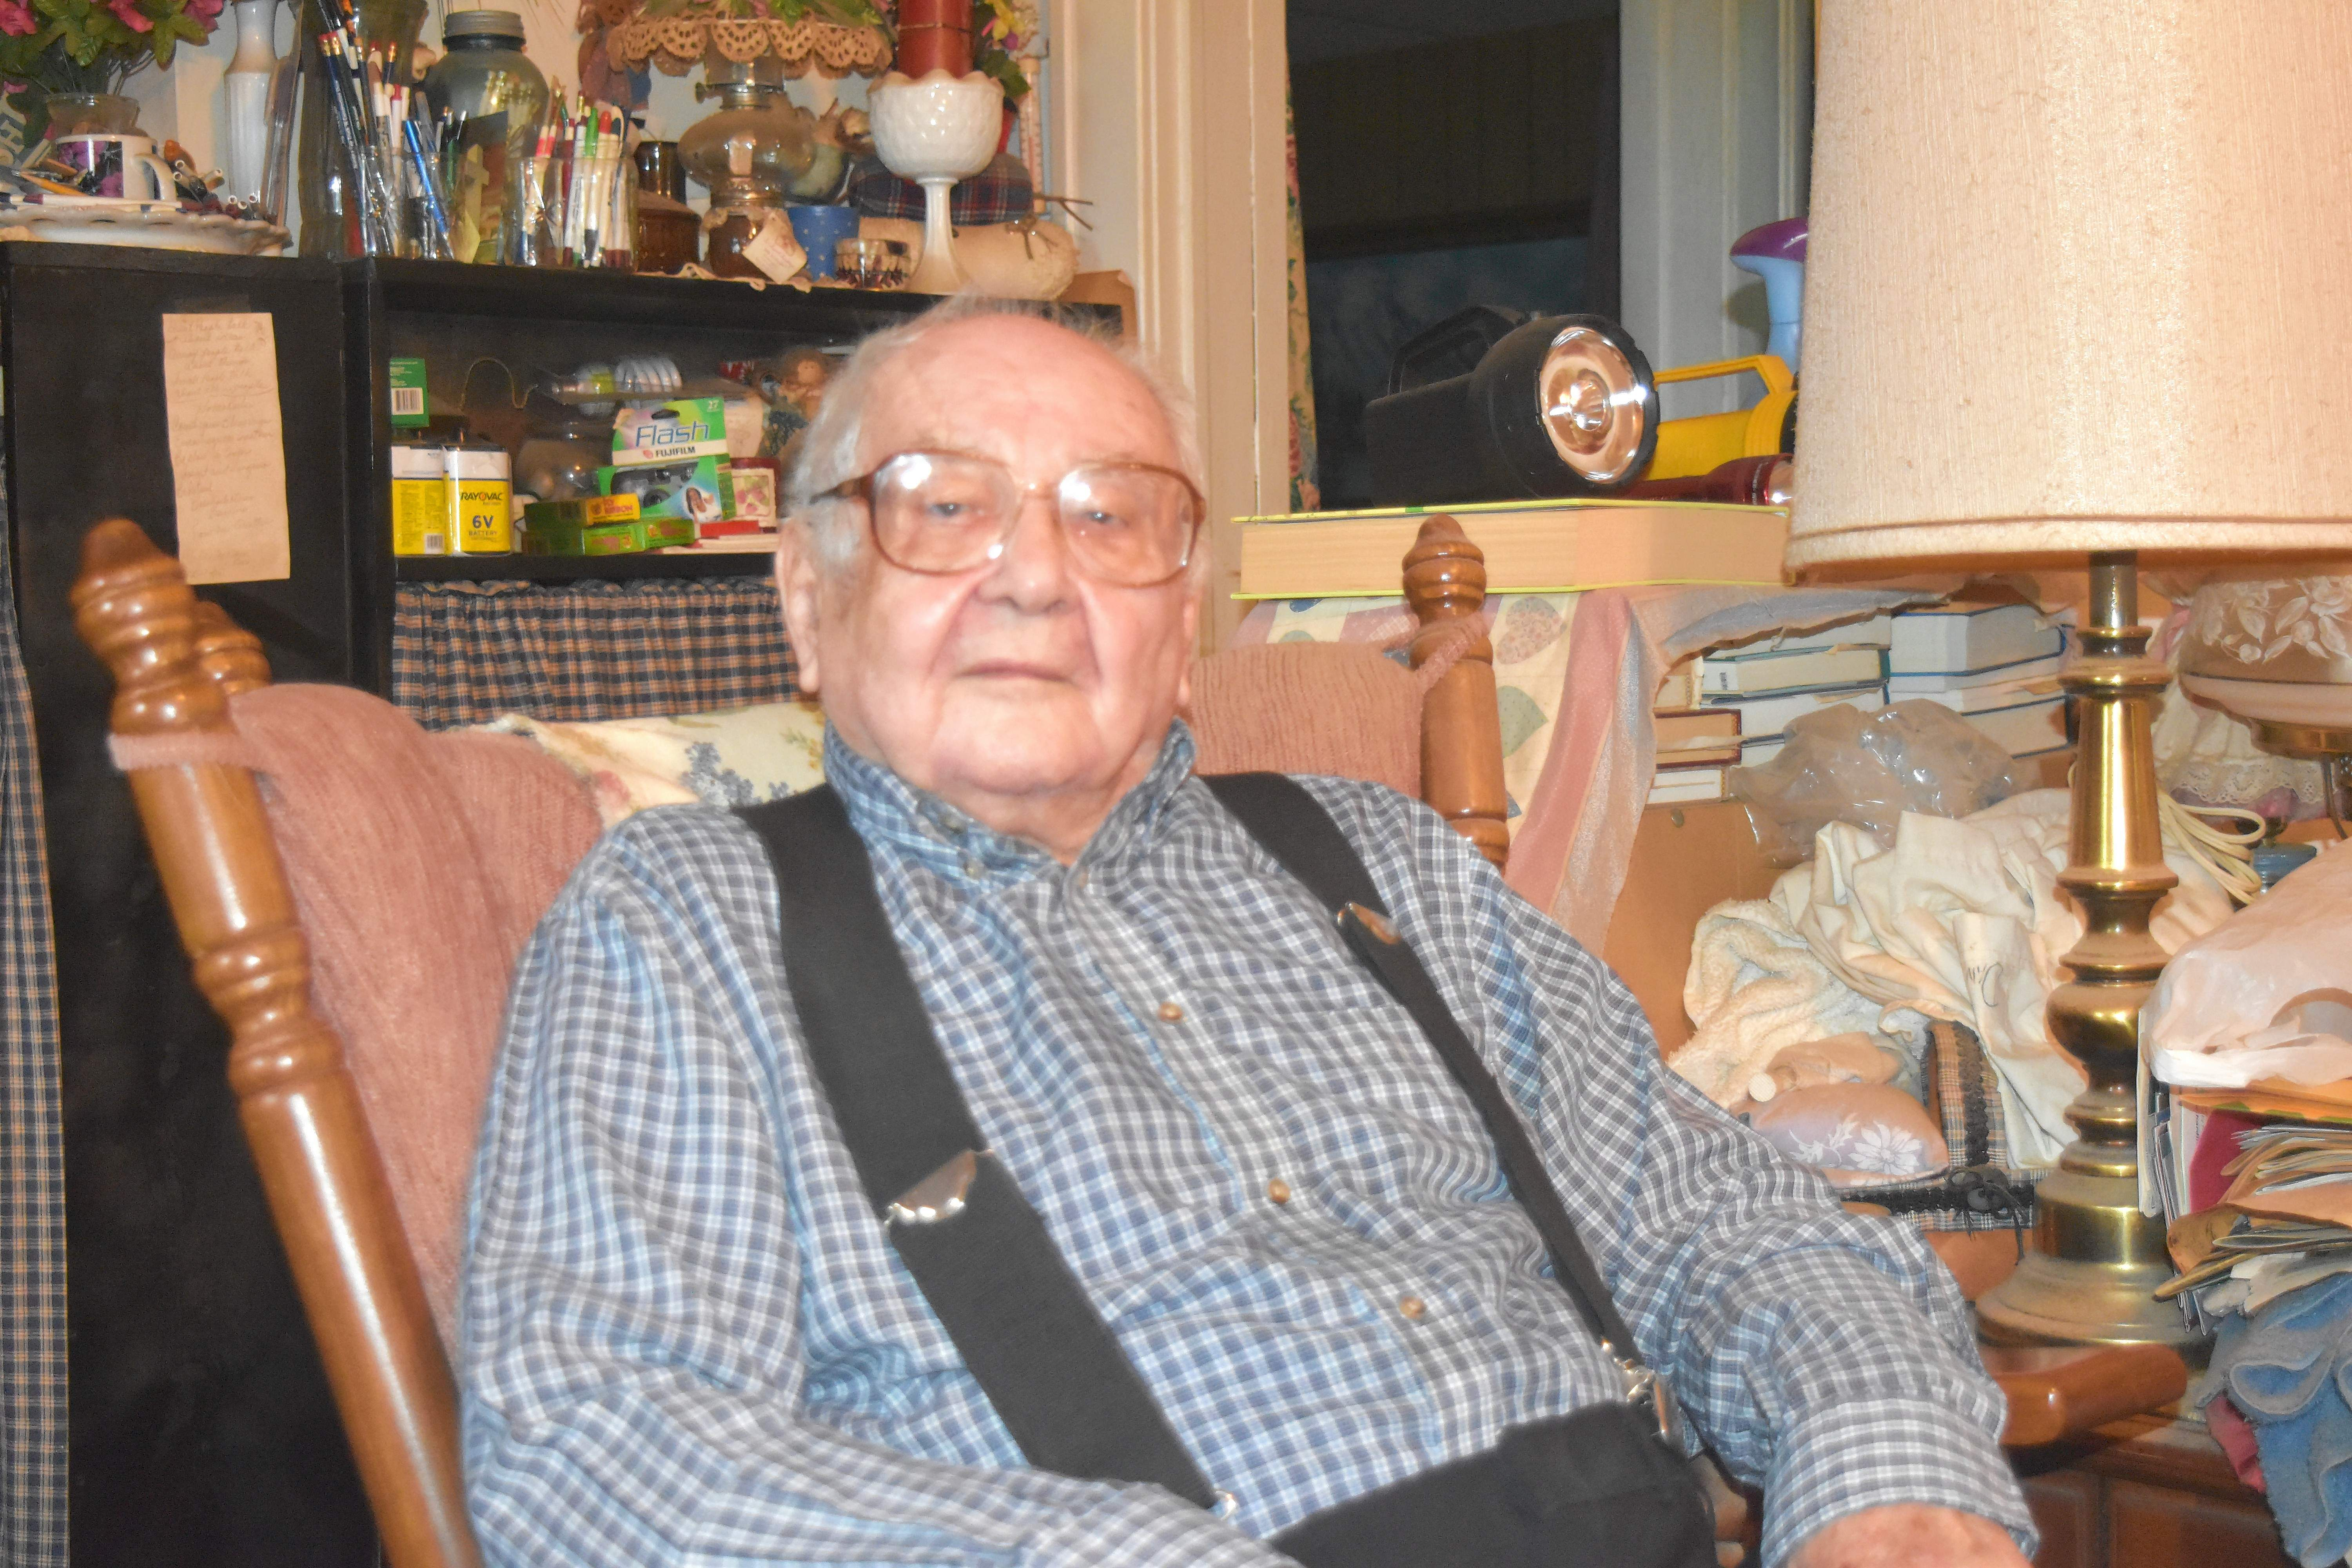 Steve Boros turns 100 this week. Although he has lived in de Soto for decades, he is originally from Dowell and will be honored as grand parade marshal at Friday's village centennial celebration. Boros is a World War II veteran, and worked in both Kathleen mines in Dowell, was a barber in Carbondale and custodian at SIU.